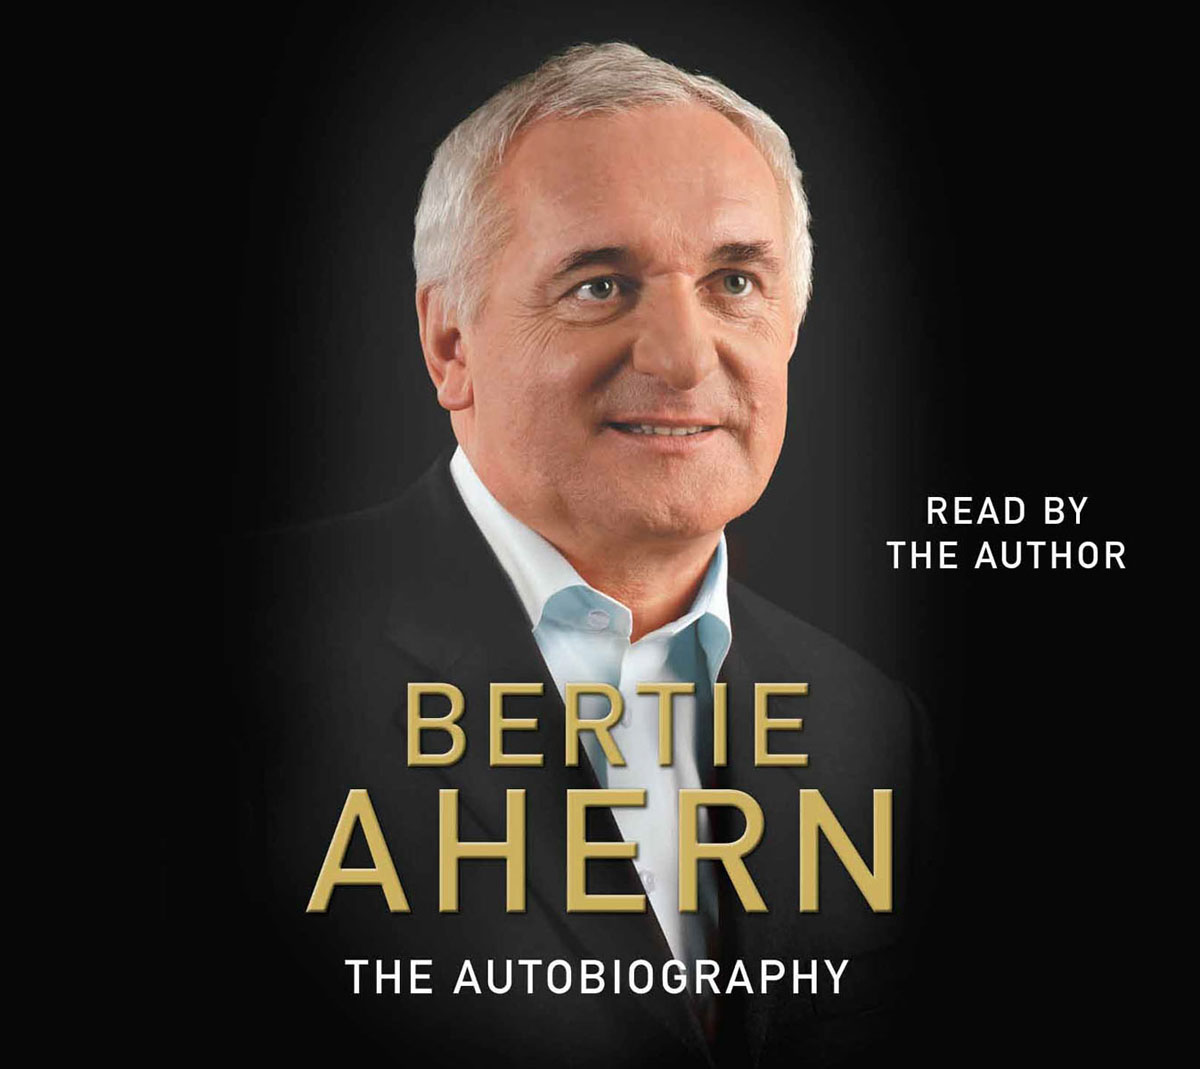 Bertie Ahern Autobiography ireland the autobiography one hundred years of irish life told by its people